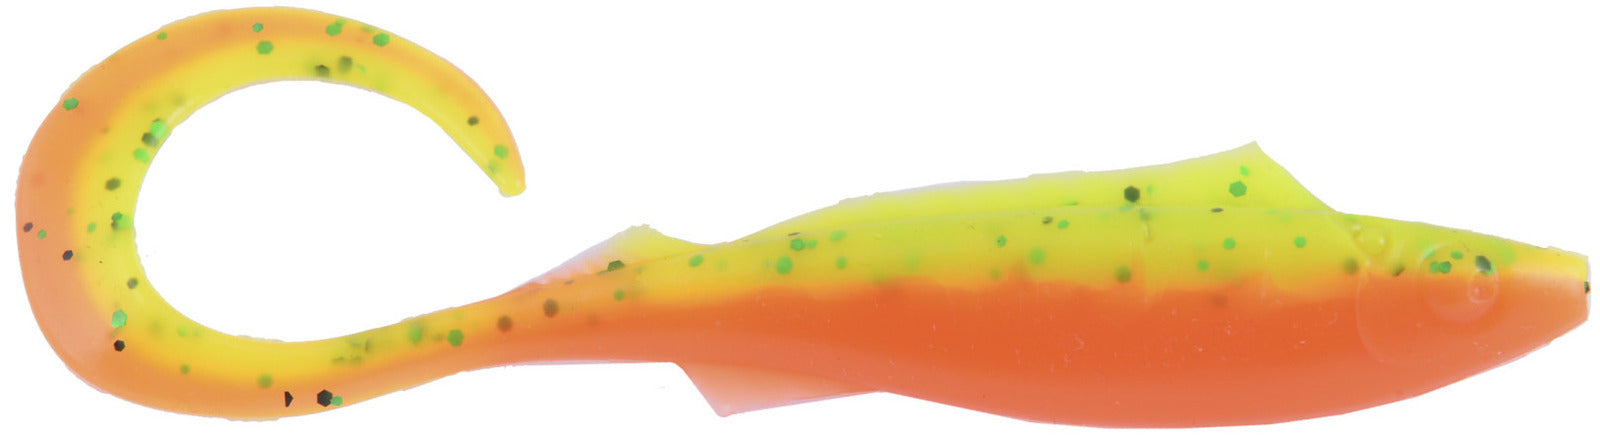 Berkley Powerbait Nemesis 6.5 Inch Soft Plastic Lure